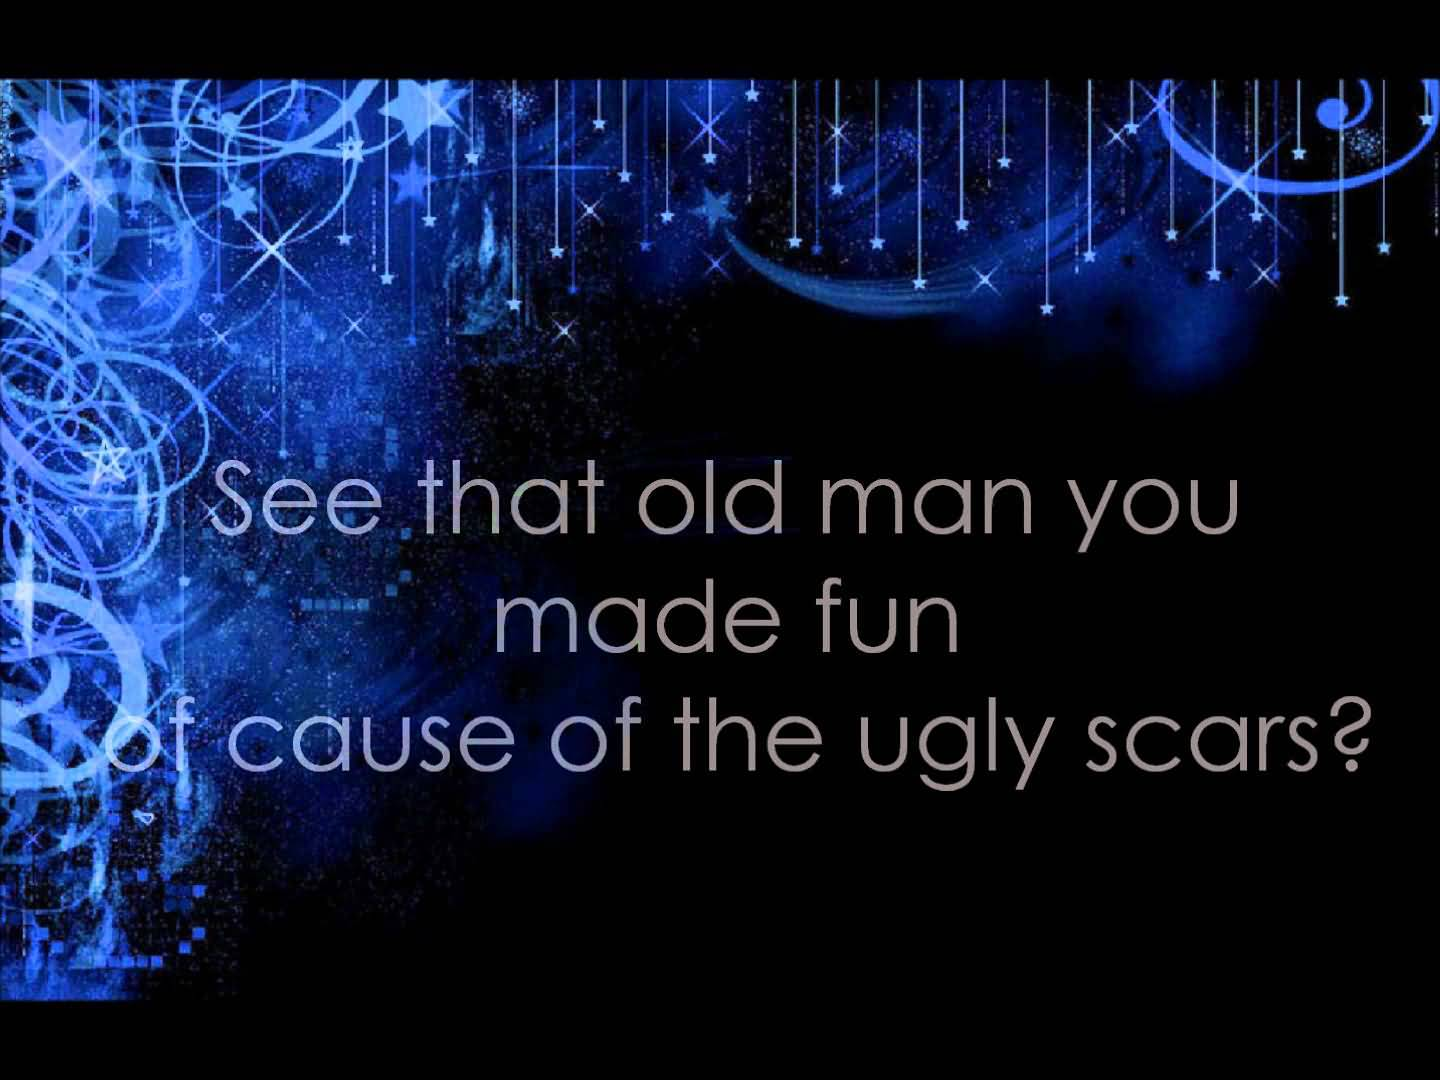 Bullied Quotes See that old man you made fun cause of the ugly scars